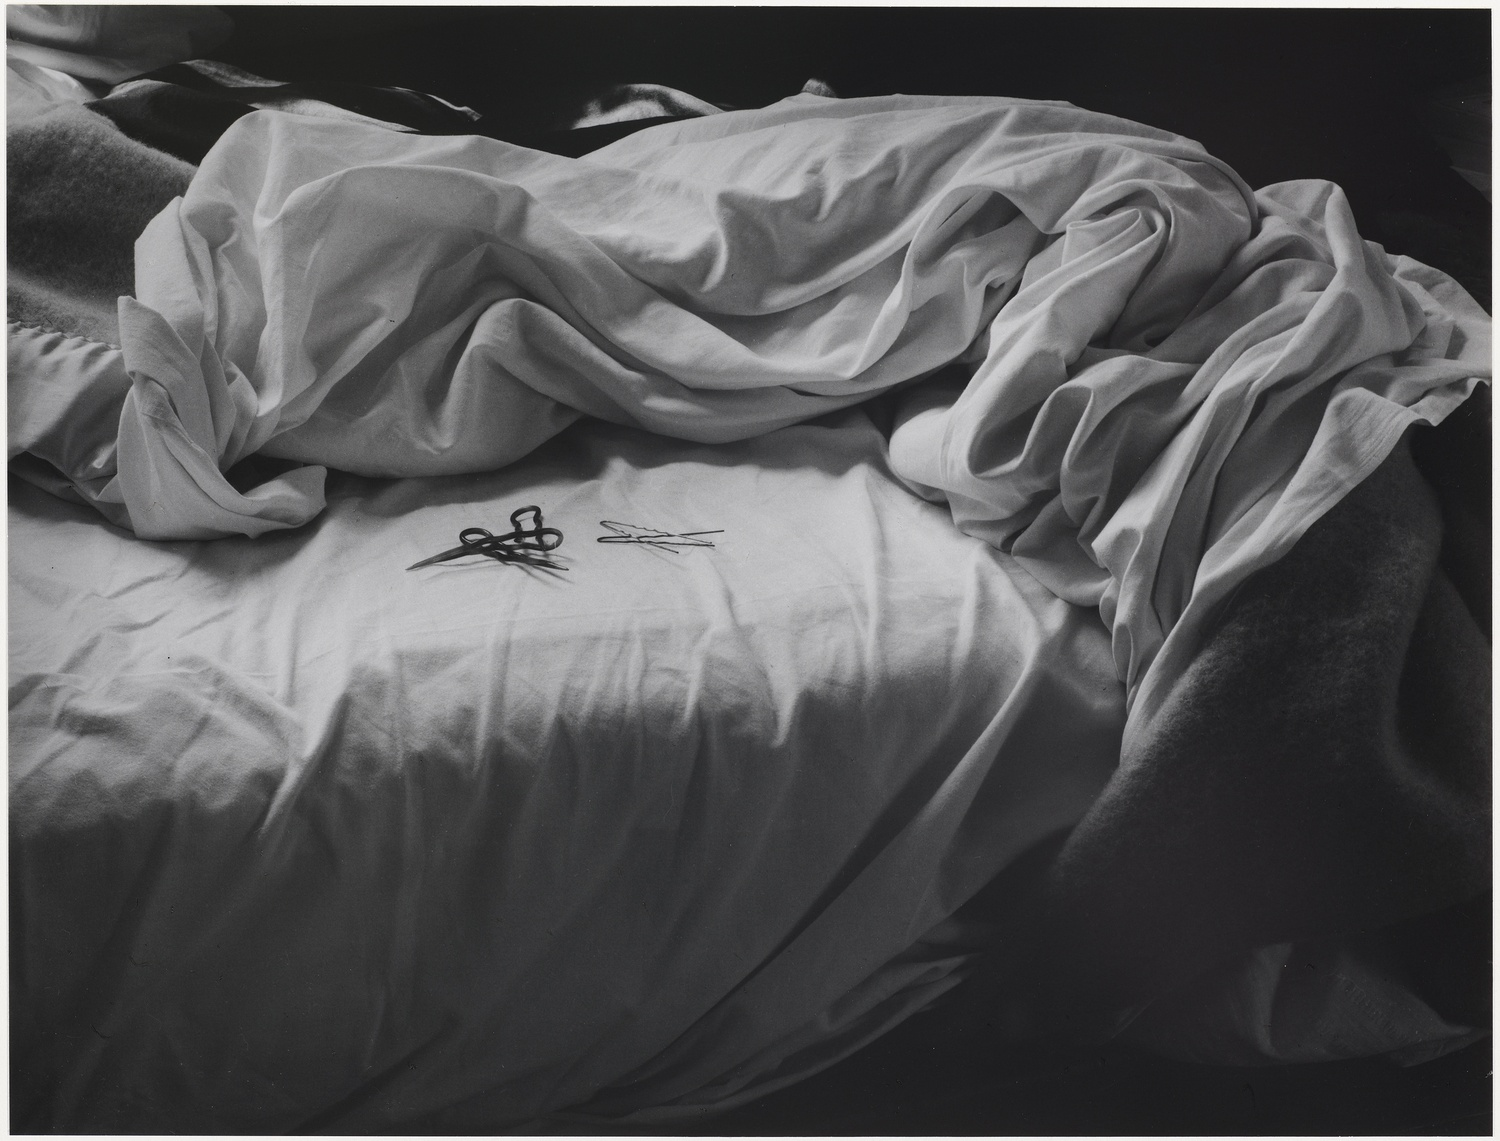 The Unmade Bed by Imogen Cunningham